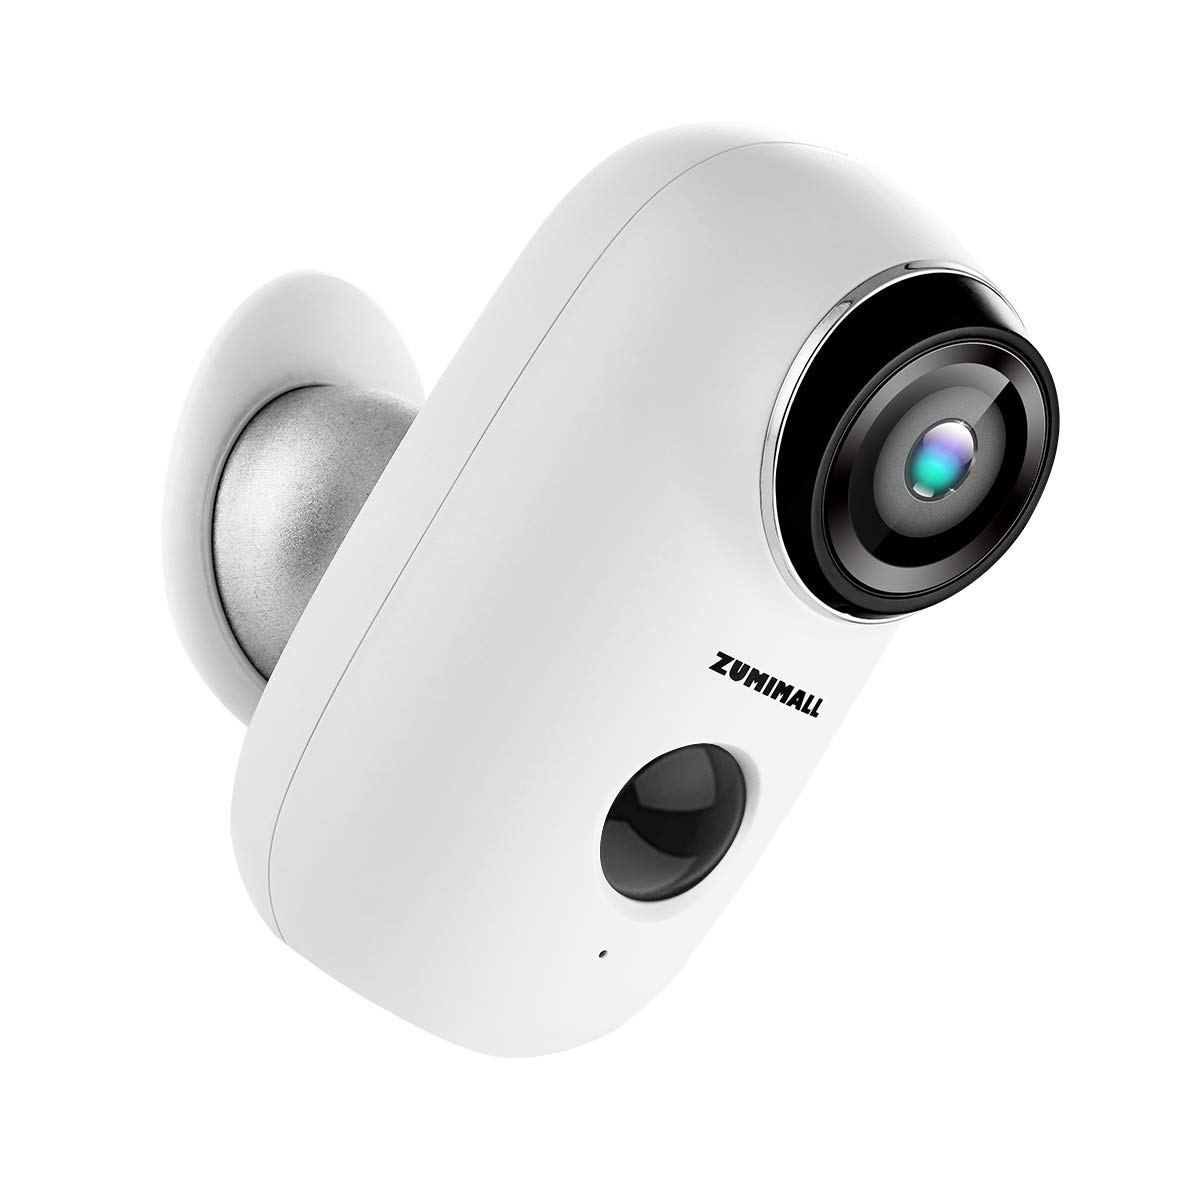 Boughtagain Awesome Goods You Bought It Again Wireless Home Security Security Cameras For Home Home Security Systems